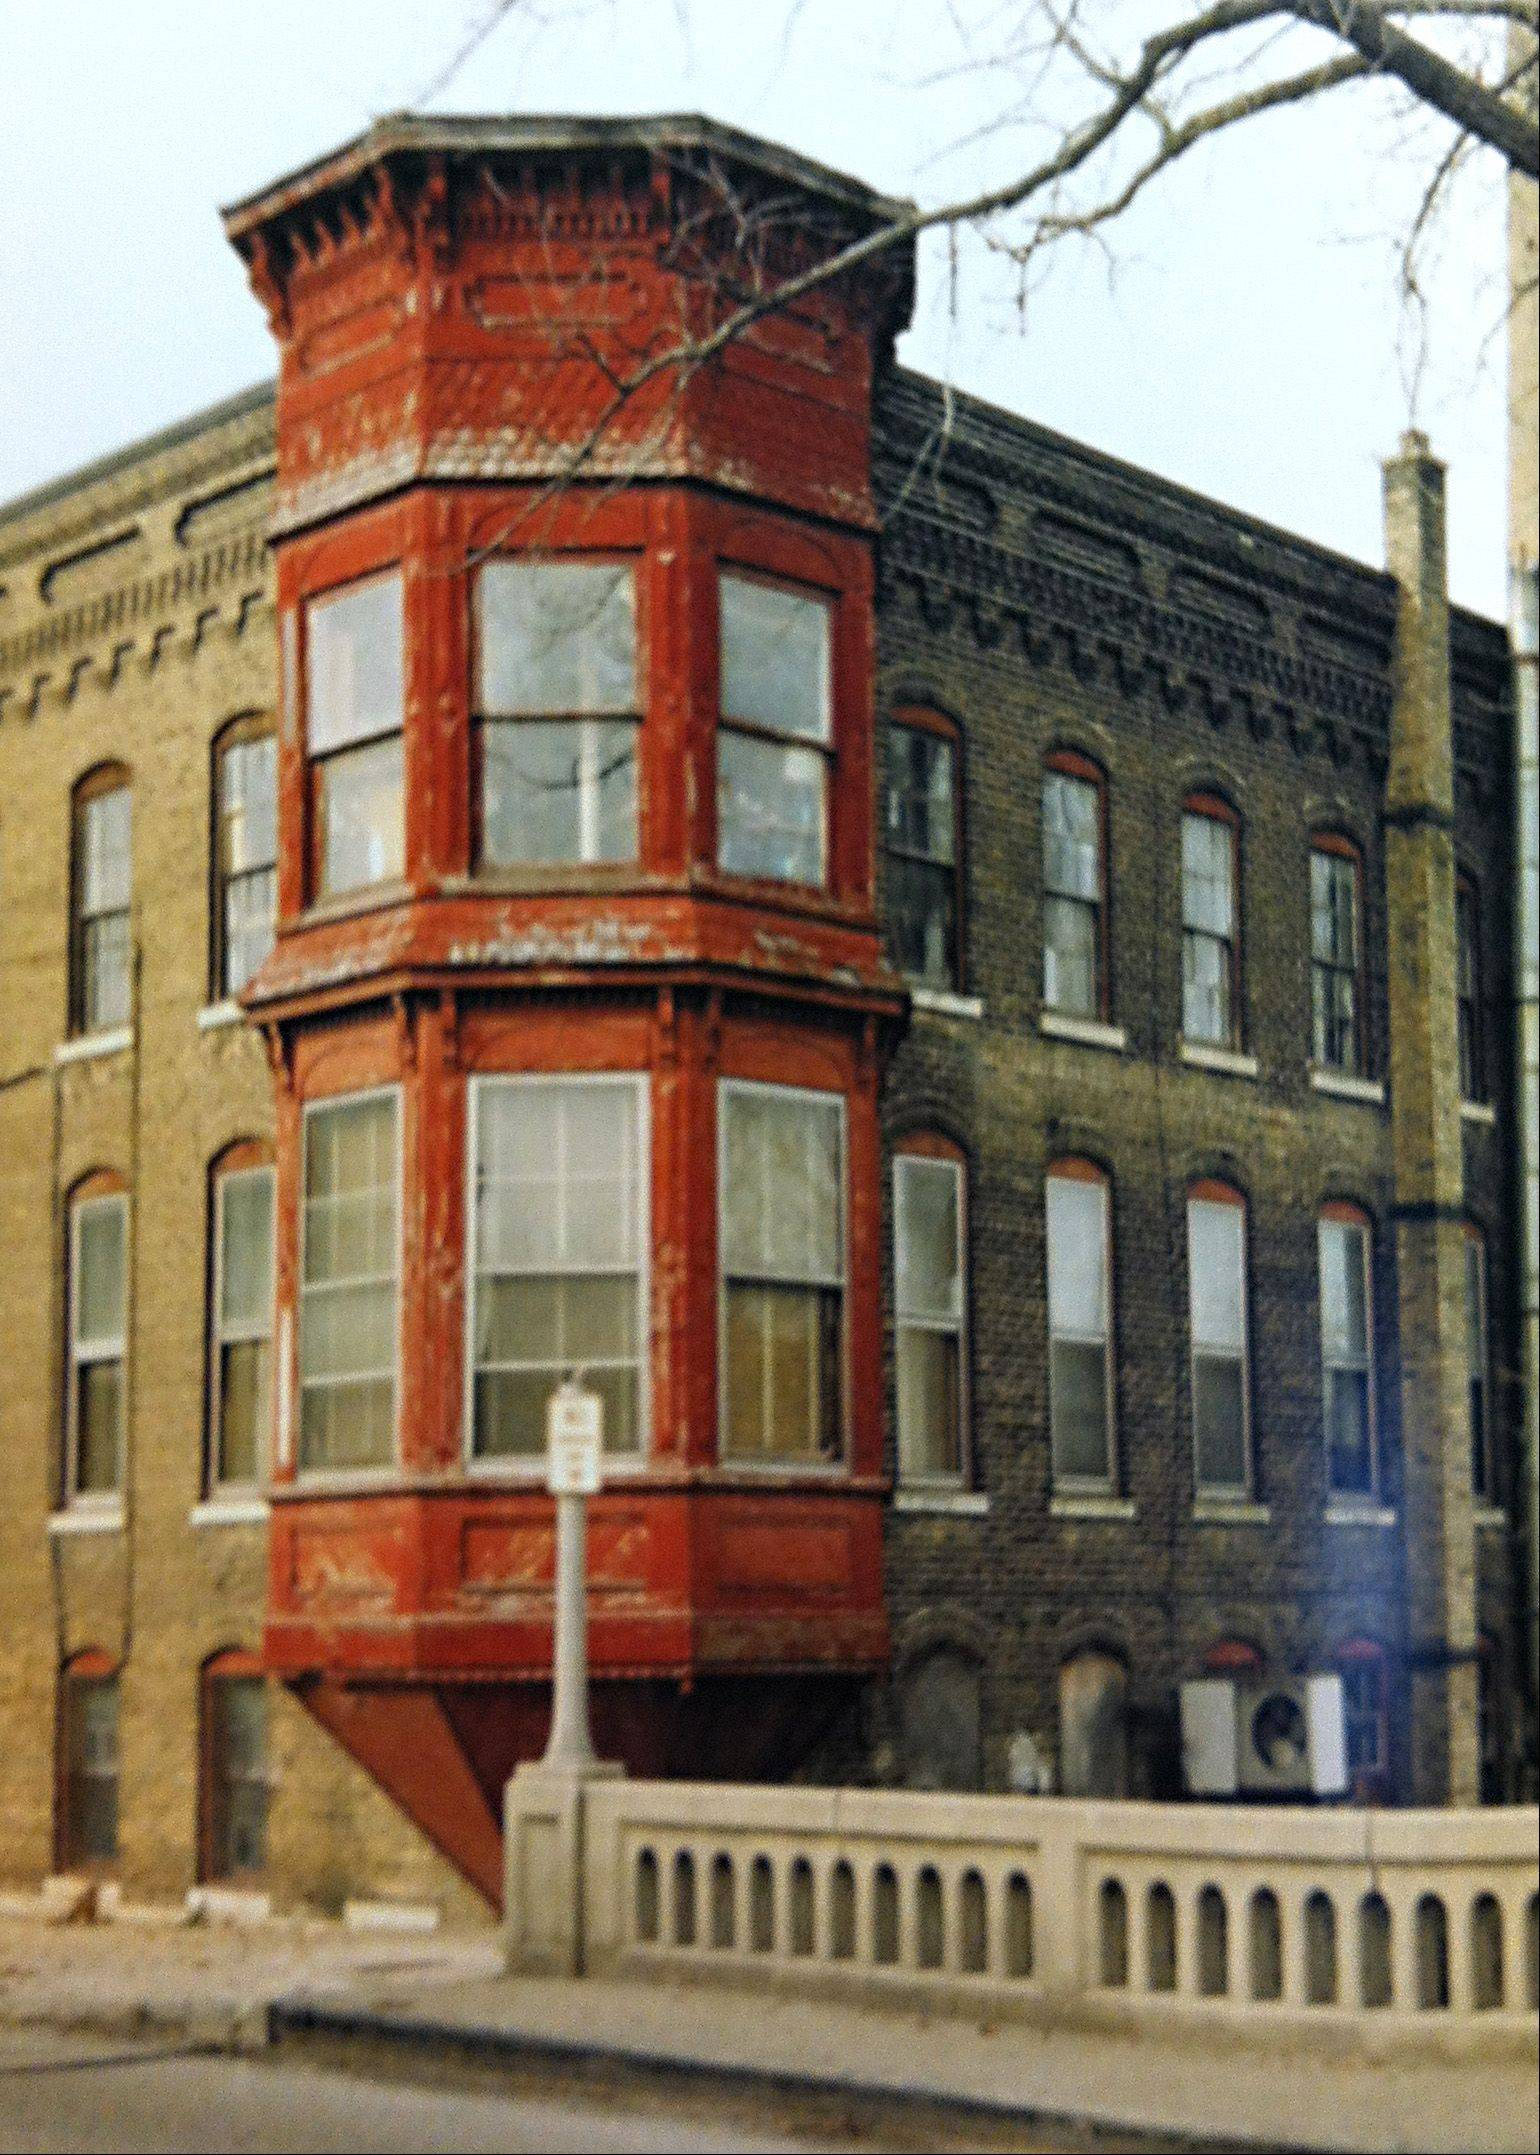 "OTTO Engineering's building at 10 W. Main St., as shown in ""The Historic Business District of Carpentersville"" before the family that owns OTTO renovated the three-story structure. The building has been standing since the 1800s and was in serious disrepair when the Roeser family bought it in 2005. During the restoration, 240 Dumpsters of junk were removed, according to the book."